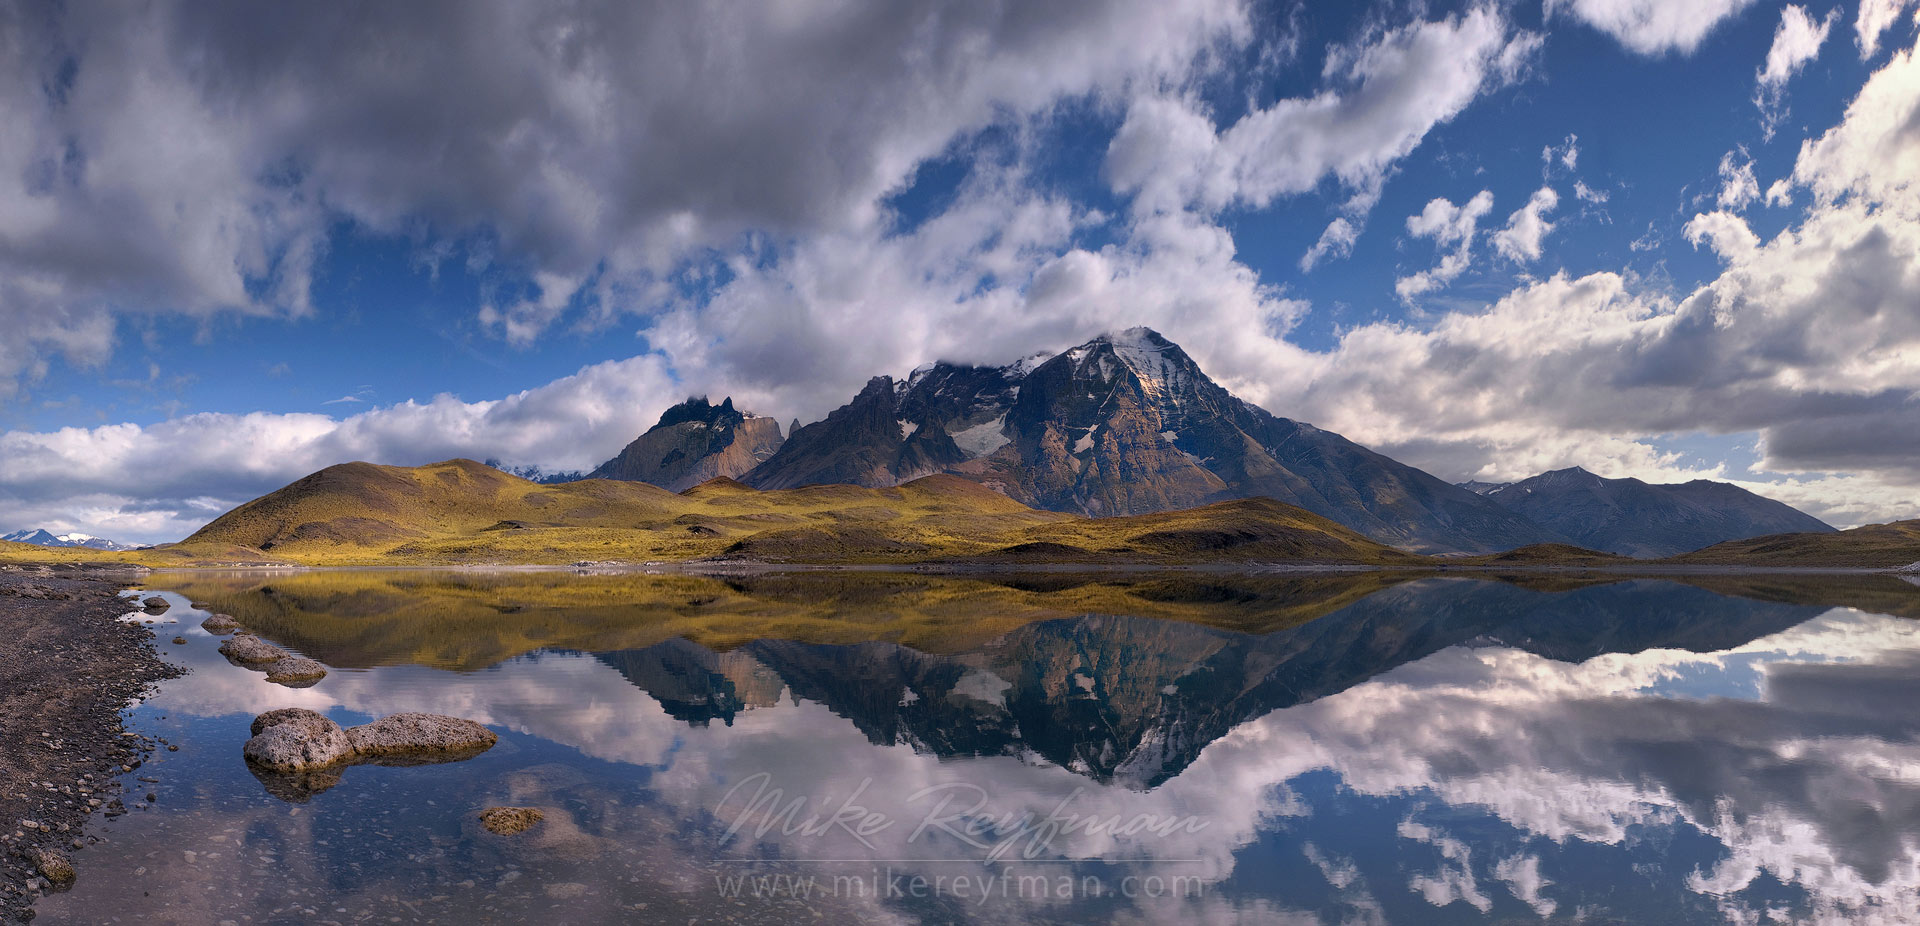 Cordillera del Paine reflecting in Laguna Larga. Torres del Paine National Park, Ultima Esperanza Province, Magallanes and Antartica Chilena Region XII, Patagonia, Chile. - Torres-Del-Paine-National-Park-Patagonia-Chile - Mike Reyfman Photography